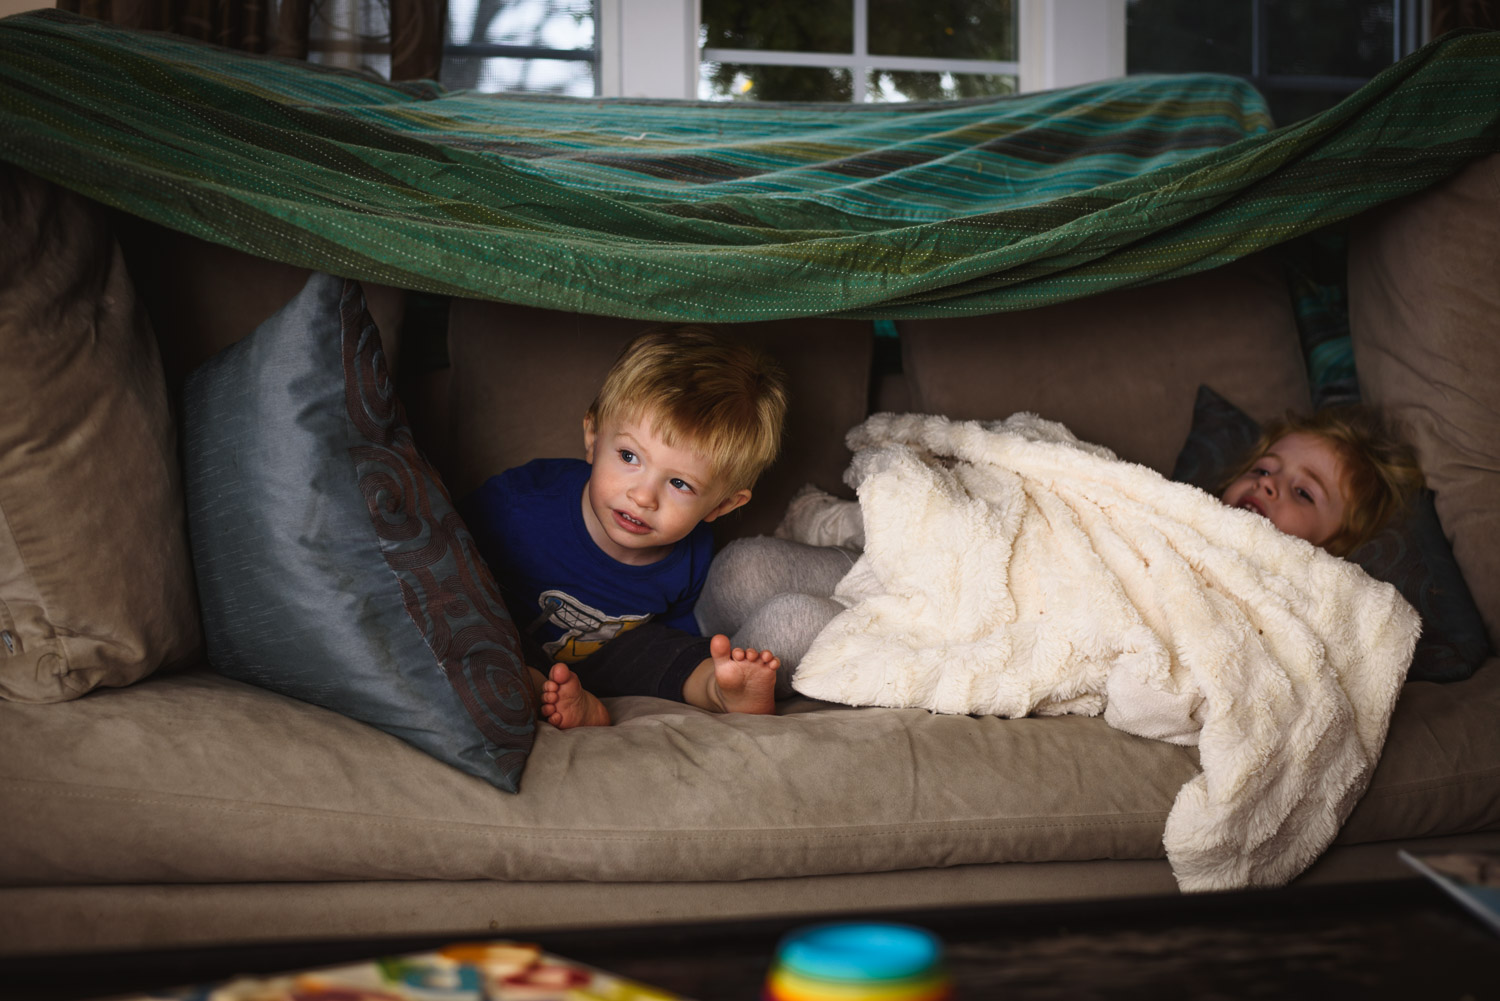 Kids in a blanket fort.